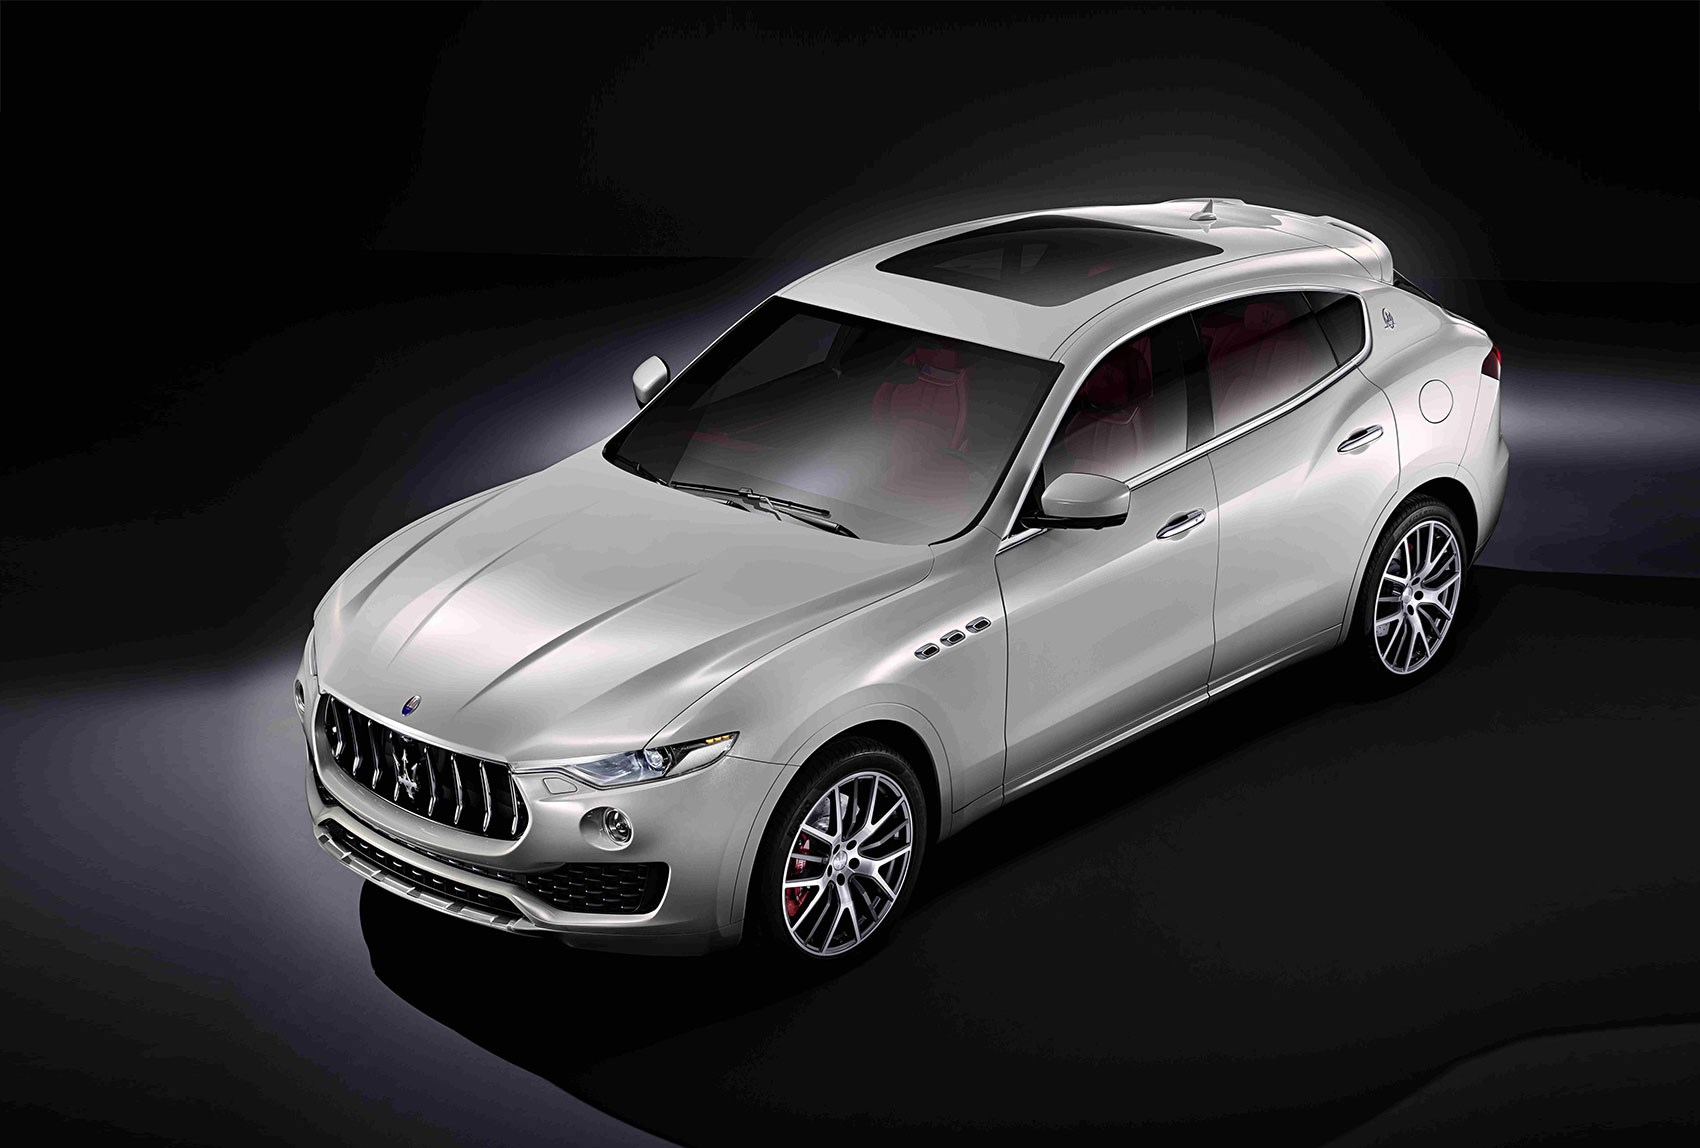 maserati 39 s first suv will be diesel only for the uk by car magazine. Black Bedroom Furniture Sets. Home Design Ideas